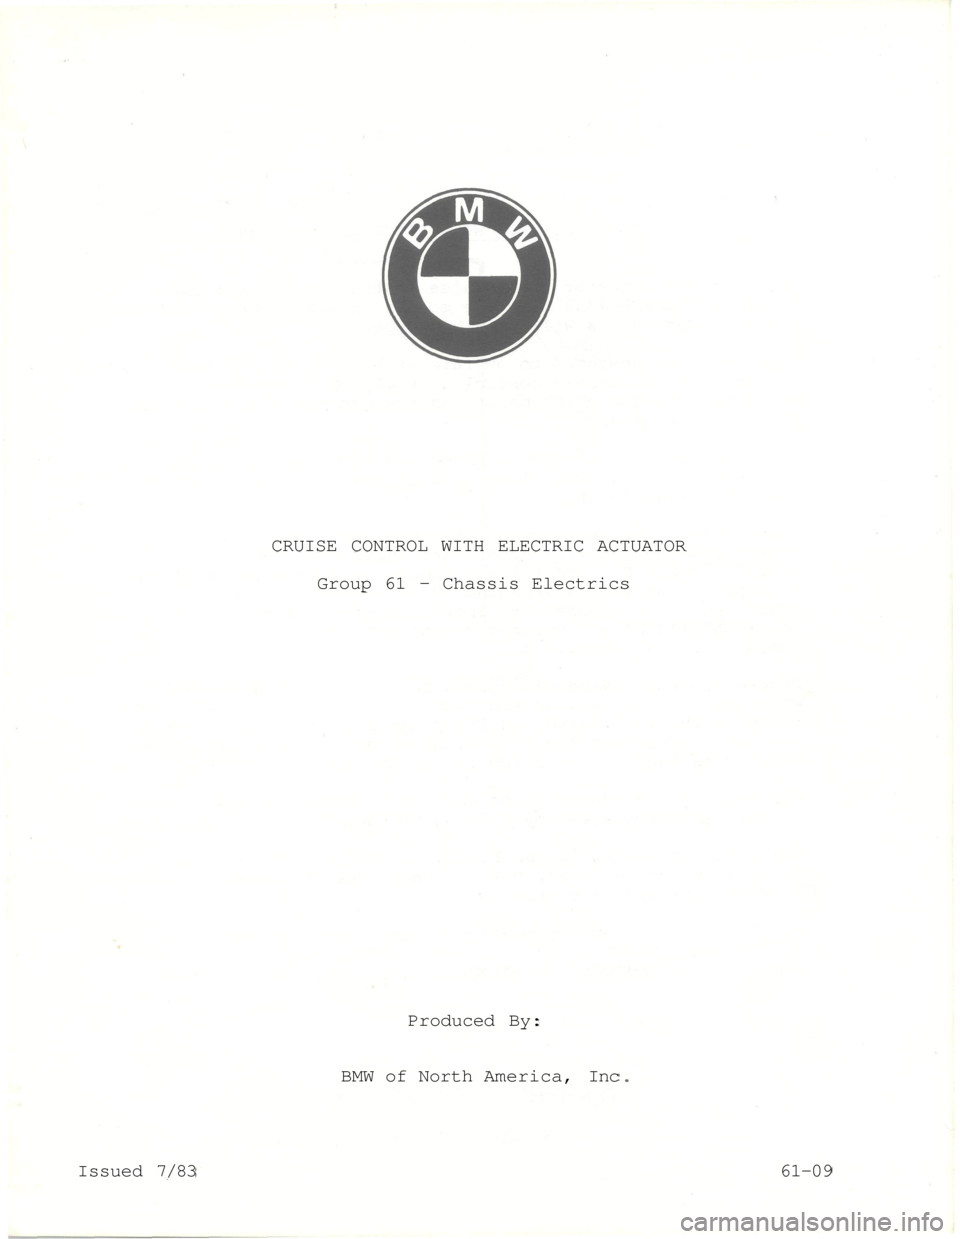 Bmw 5 Series 1984 E28 Cruise Control With Electric Acutator Engine Diagram